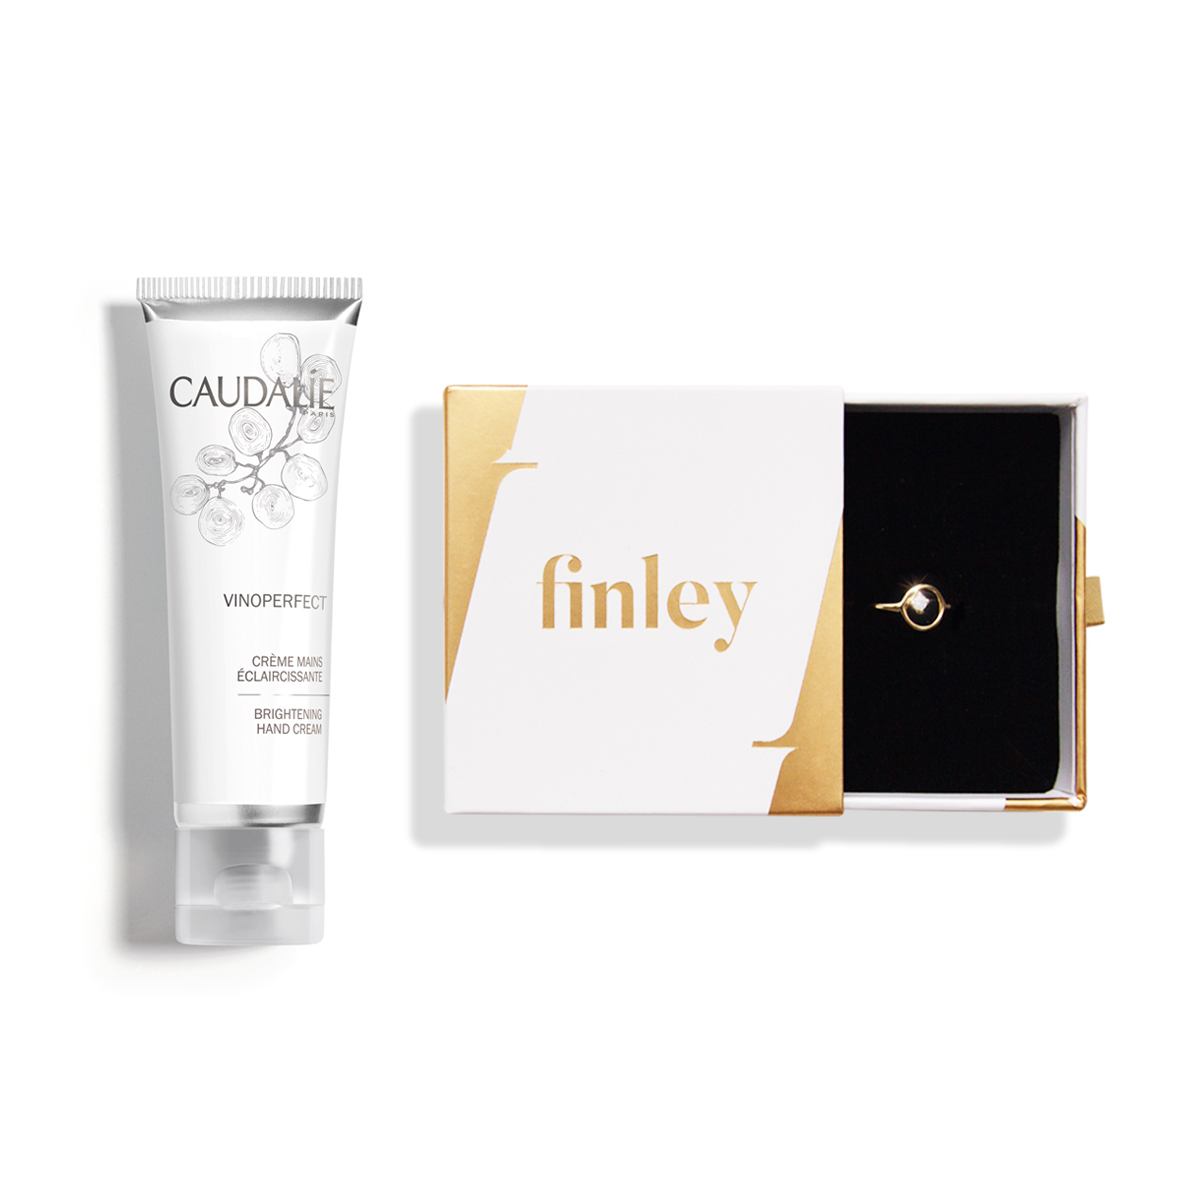 Hand Cream + Finley Ring Size 7